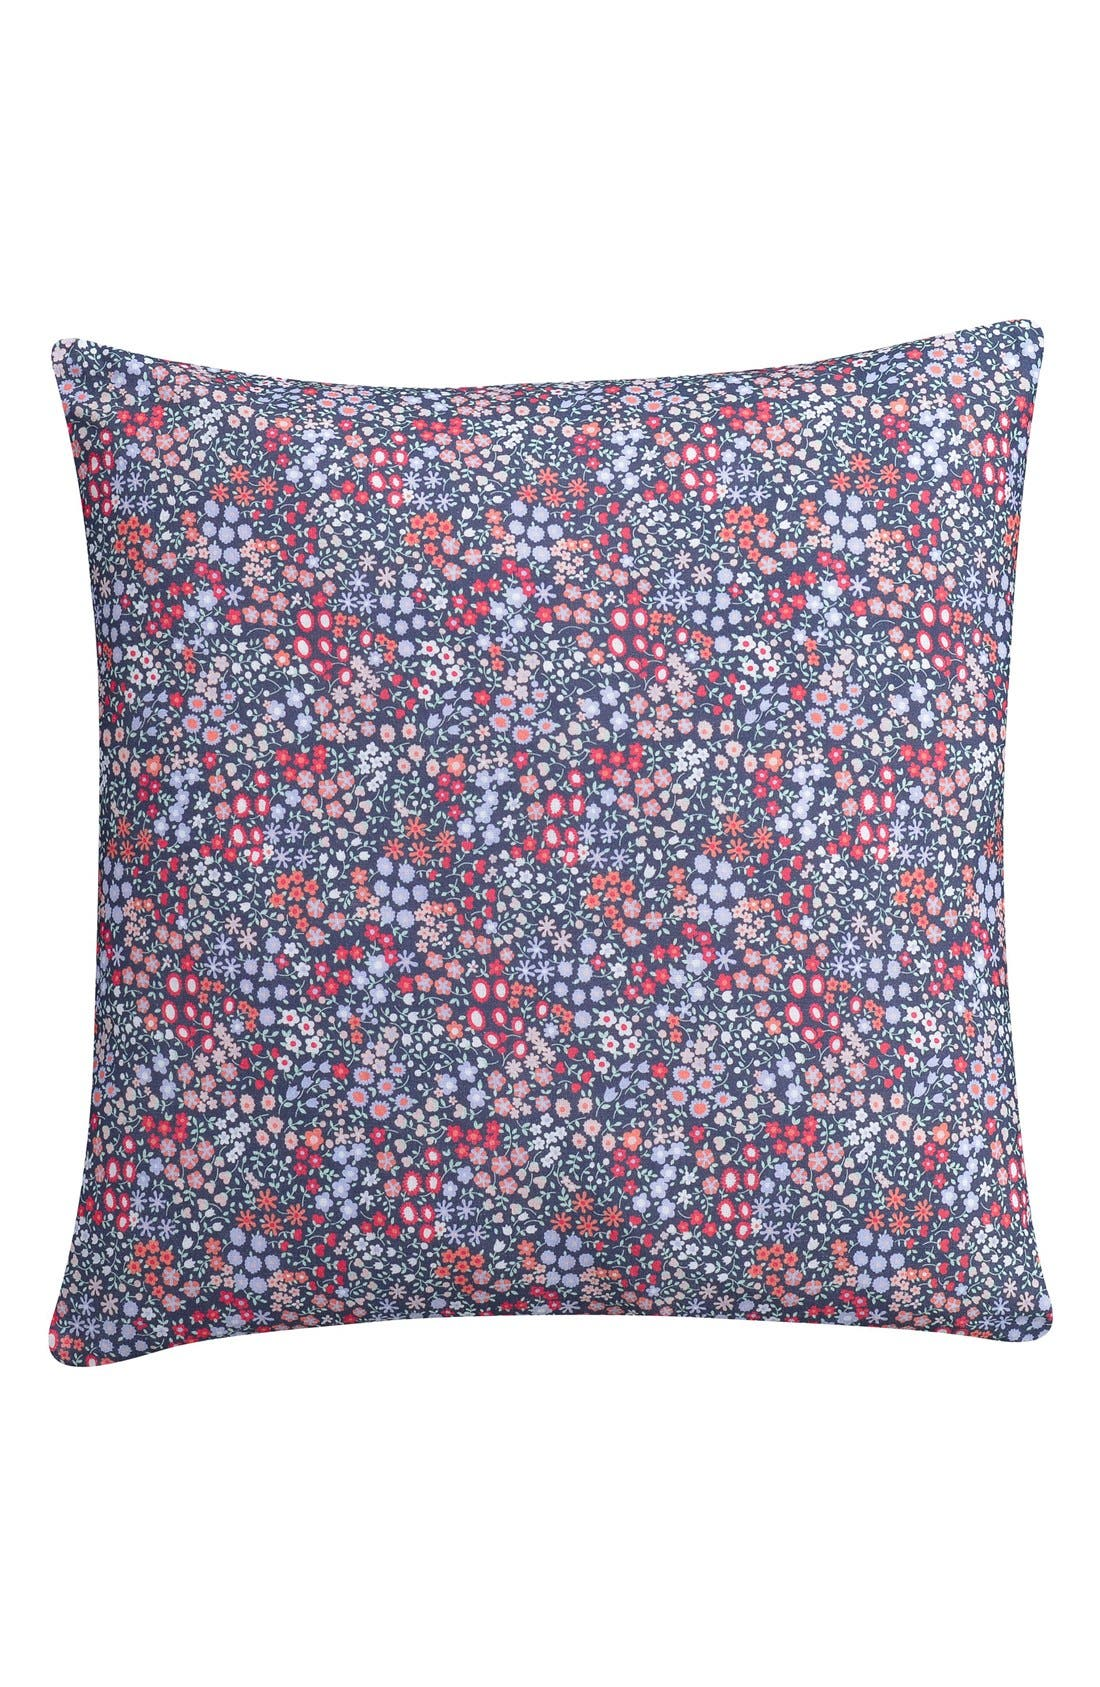 'Sketch' Floral Print Accent Pillow,                             Main thumbnail 1, color,                             600